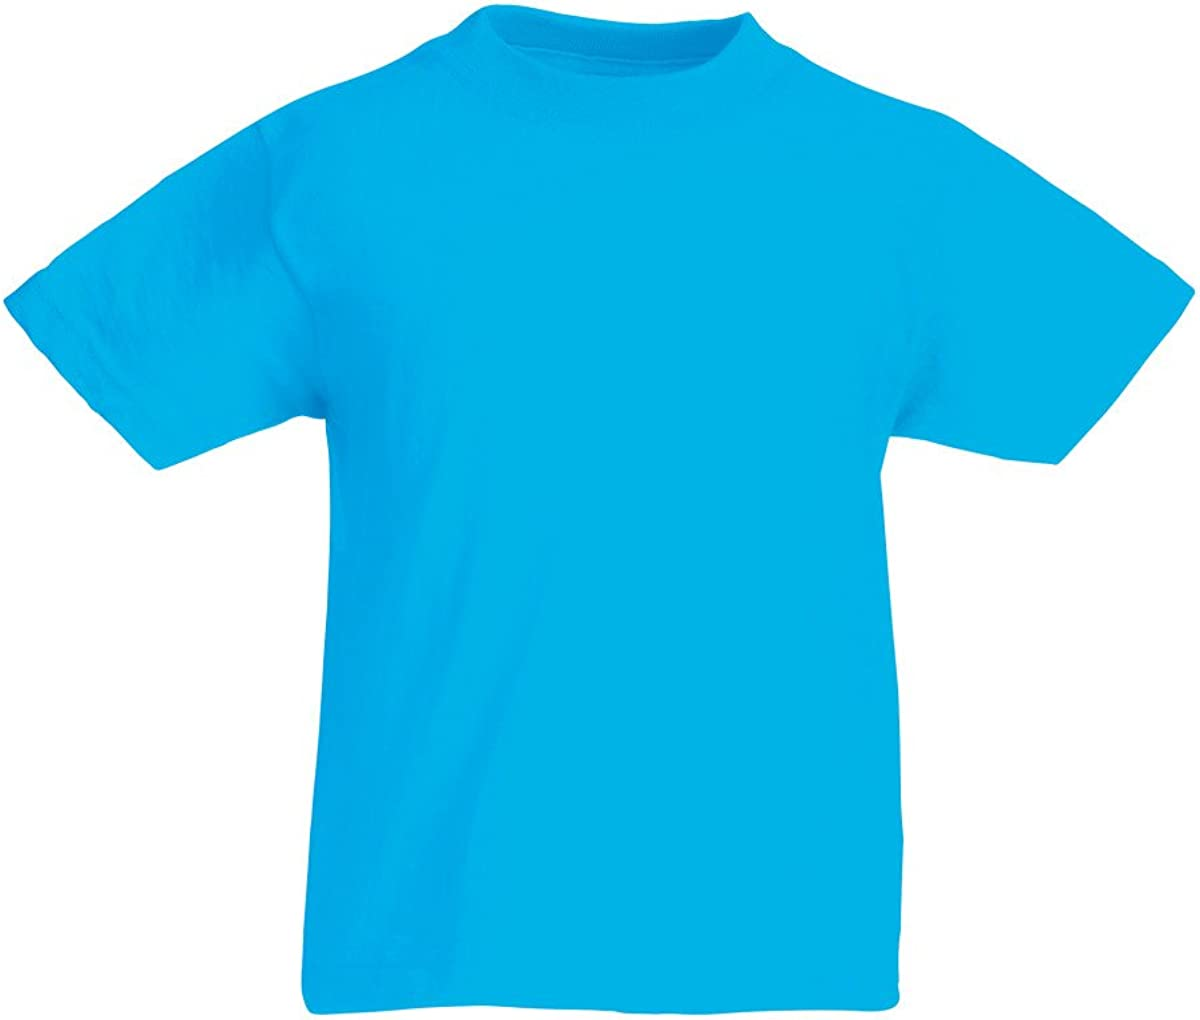 Fruit of the Loom Plain Childrens T Shirt All Ages